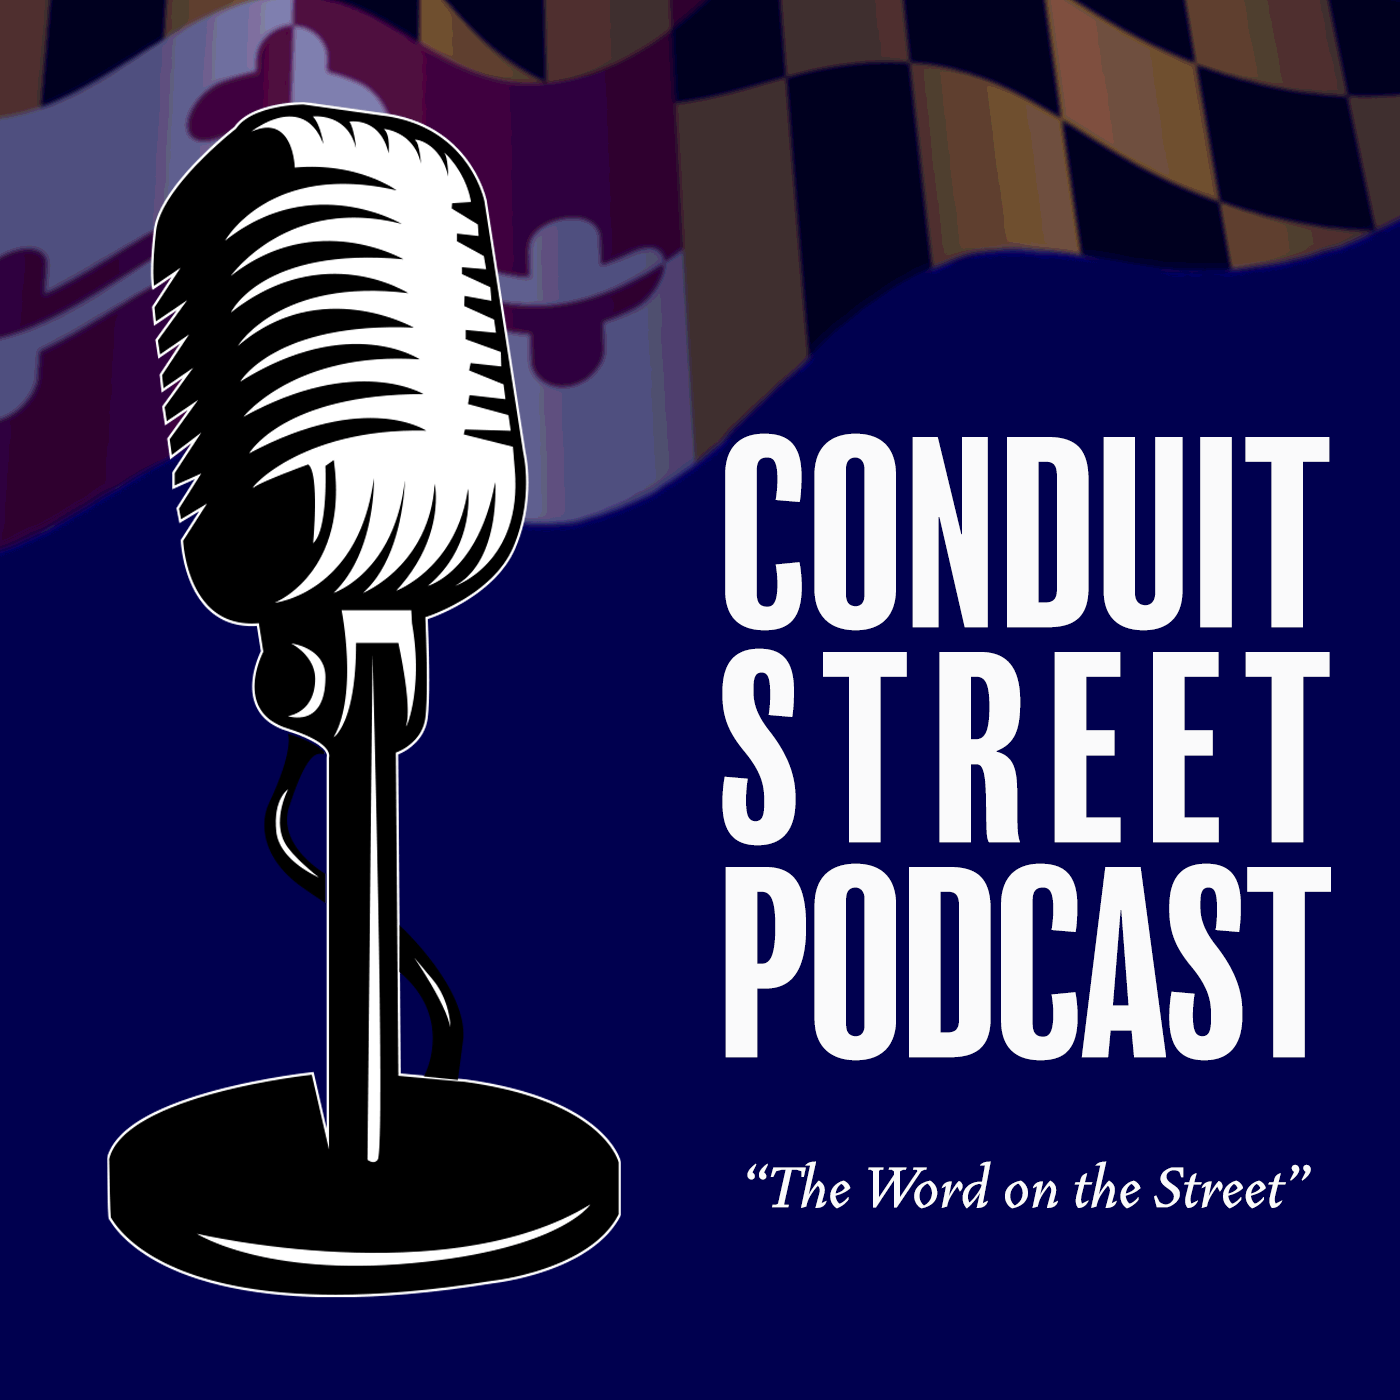 Conduit Street Podcast: Running Down the Results